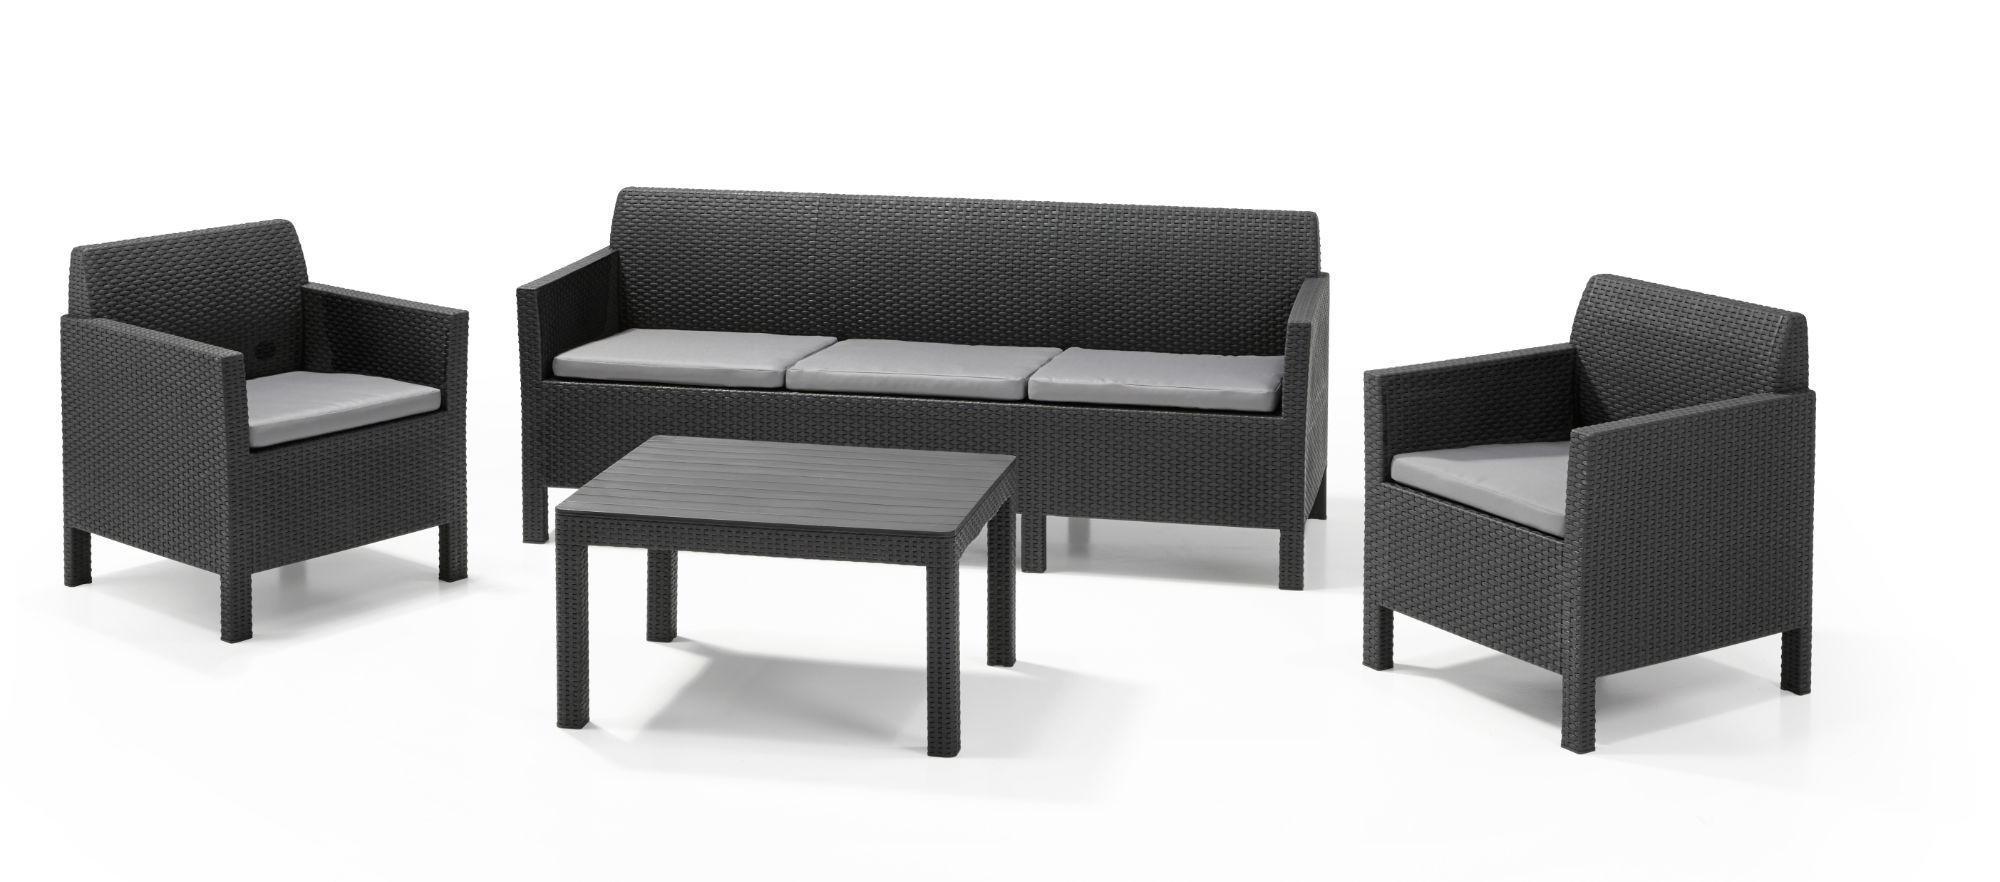 ensemble de salon de jardin 16 id es de d coration. Black Bedroom Furniture Sets. Home Design Ideas